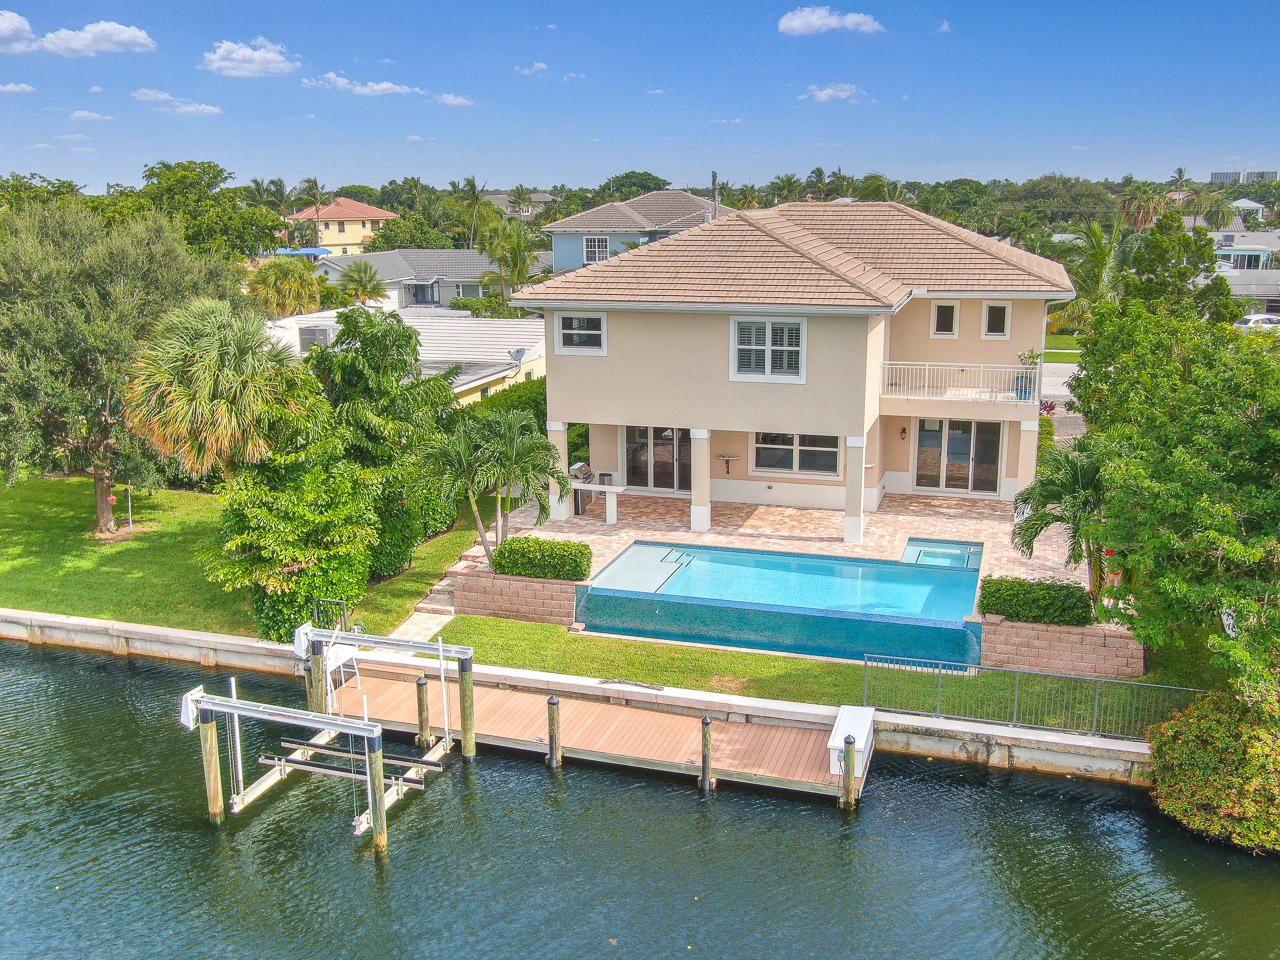 624 Inlet Road, North Palm Beach, Florida 33408, 5 Bedrooms Bedrooms, ,3 BathroomsBathrooms,A,Single family,Inlet,RX-10549669